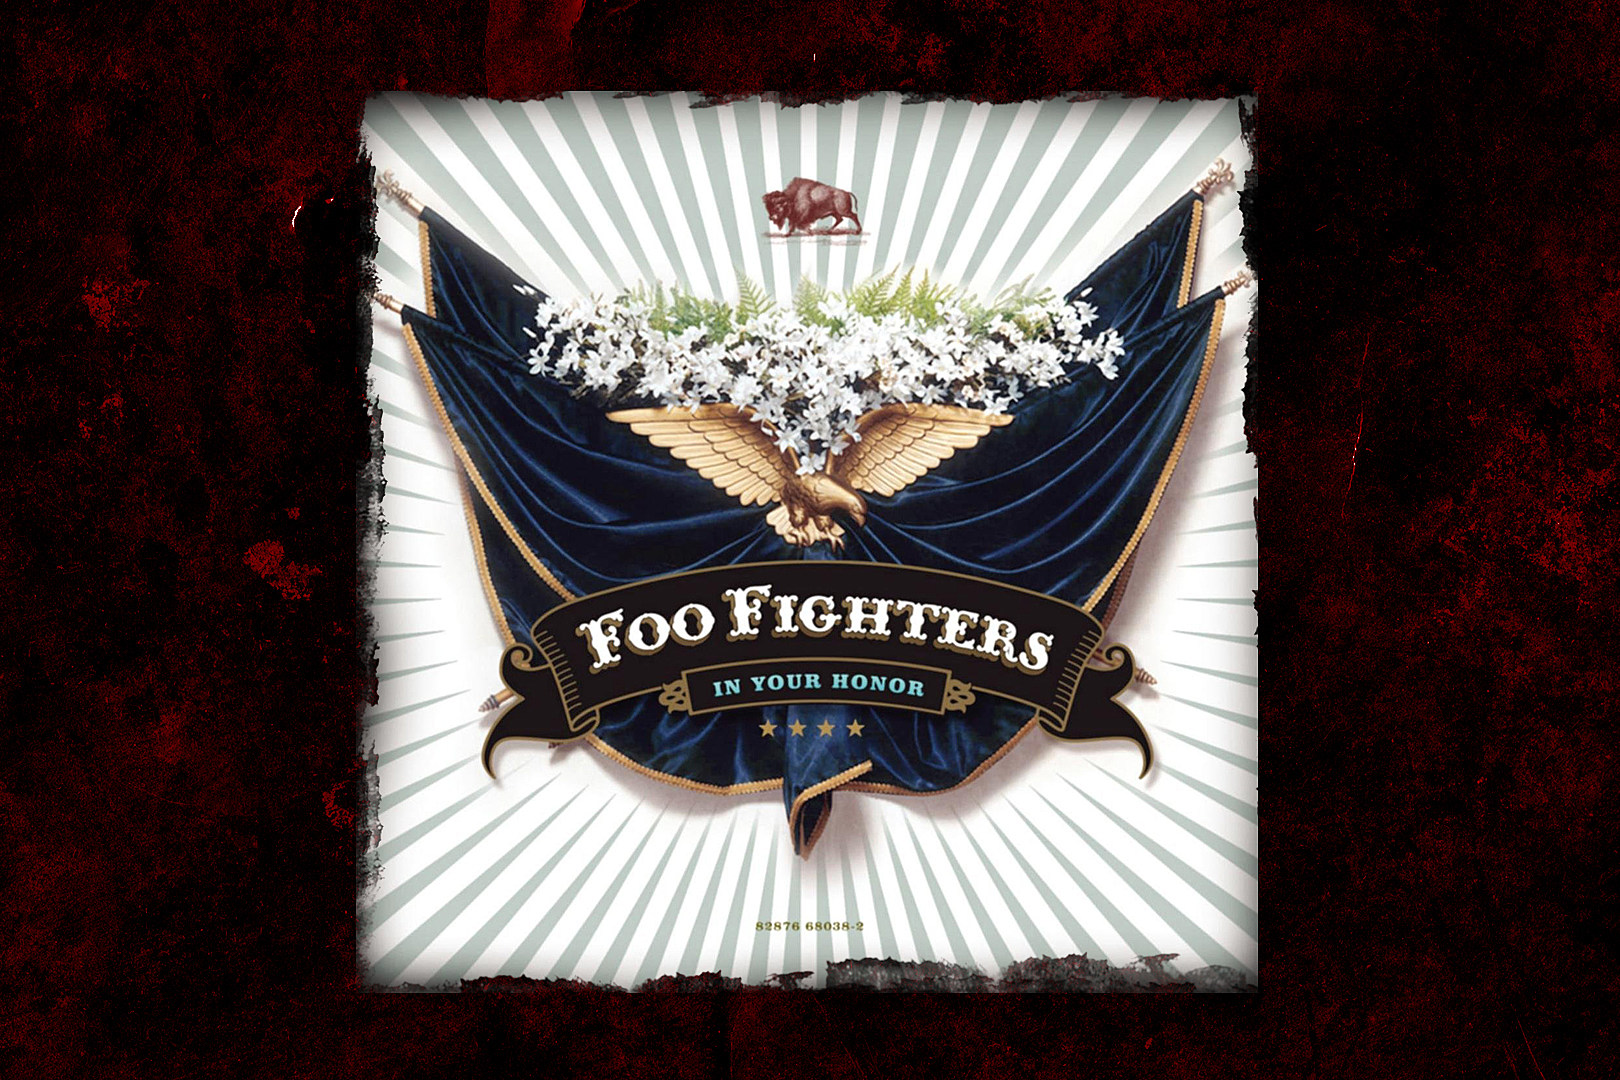 eae16cf11195f 14 Years Ago: Foo Fighters Release 'In Your Honor'